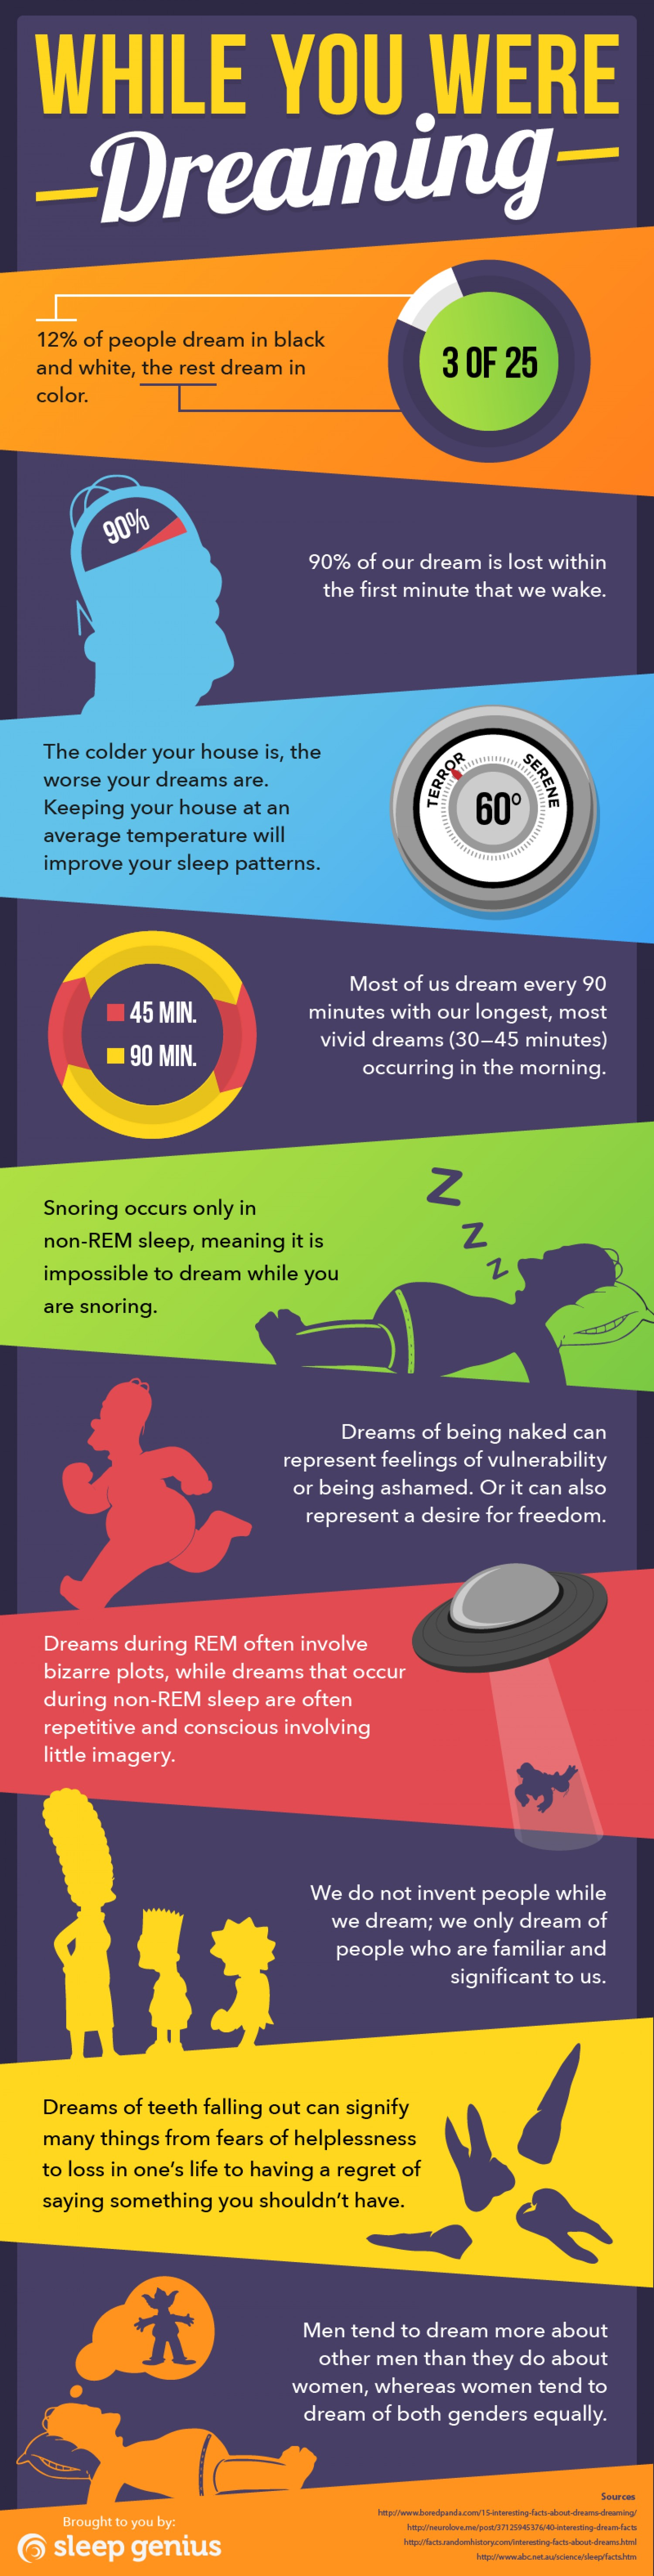 10 Facts About Your Dreams